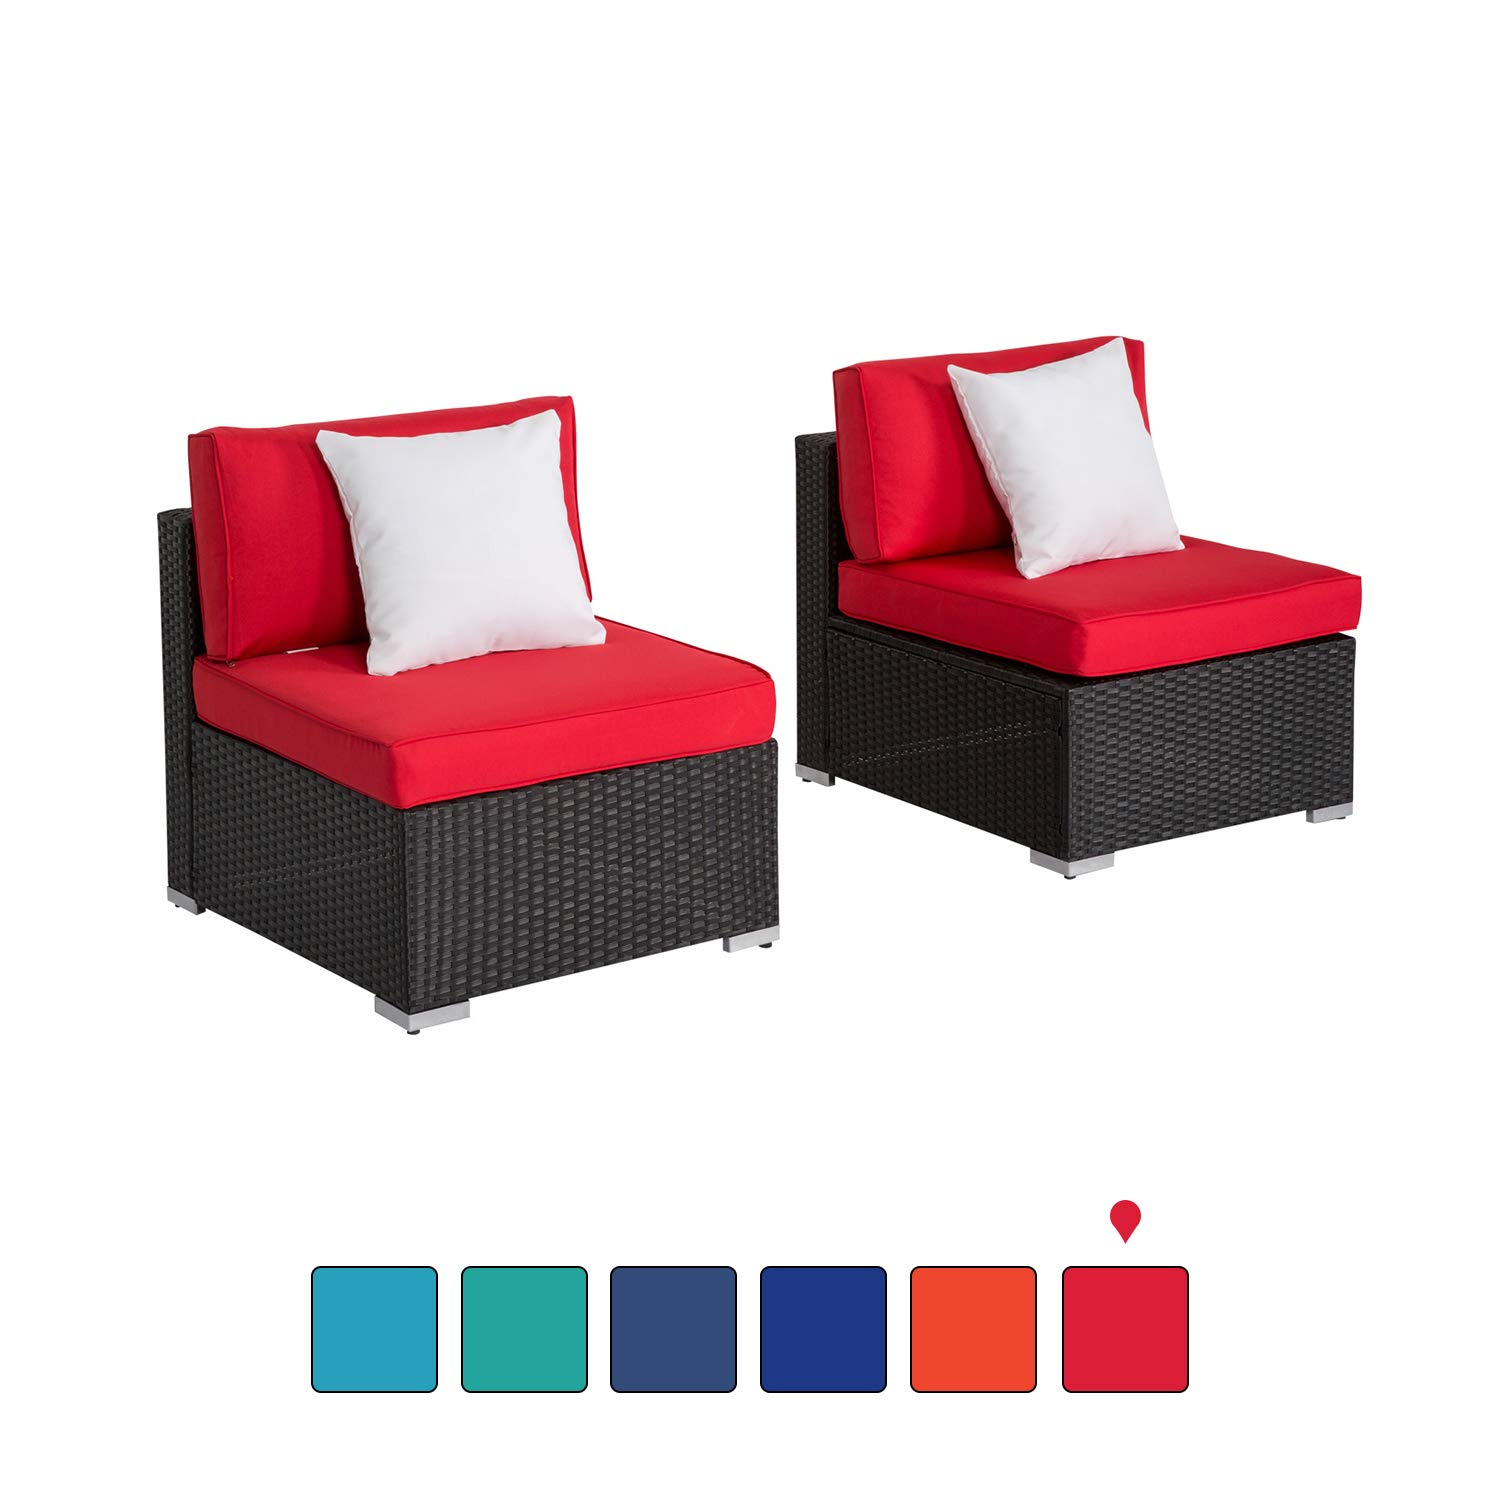 Peach Tree Outdoor Loveseat 2 PCs Patio Furniture Set, Wicker Armless Sofa Chairs Black Rattan Thick Cushions Infinitely Combination by Kinsunny